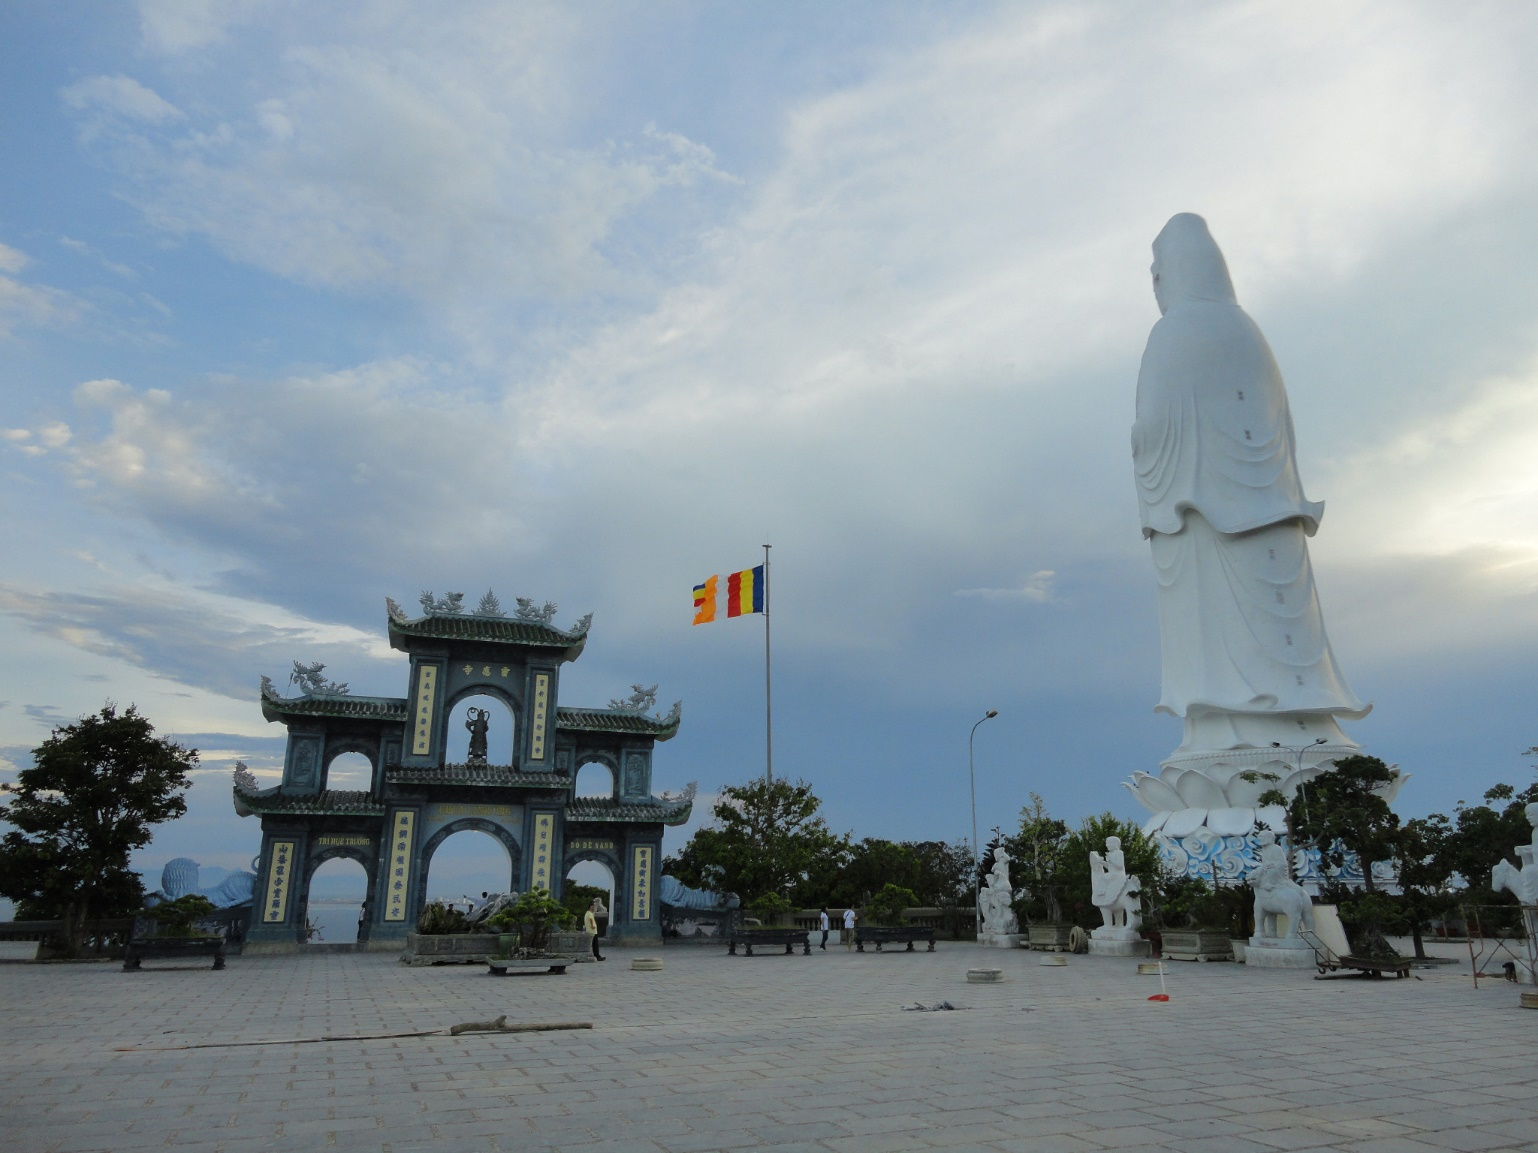 A comprehensive guild to Da Nang, Vietnam (Part 1)_4